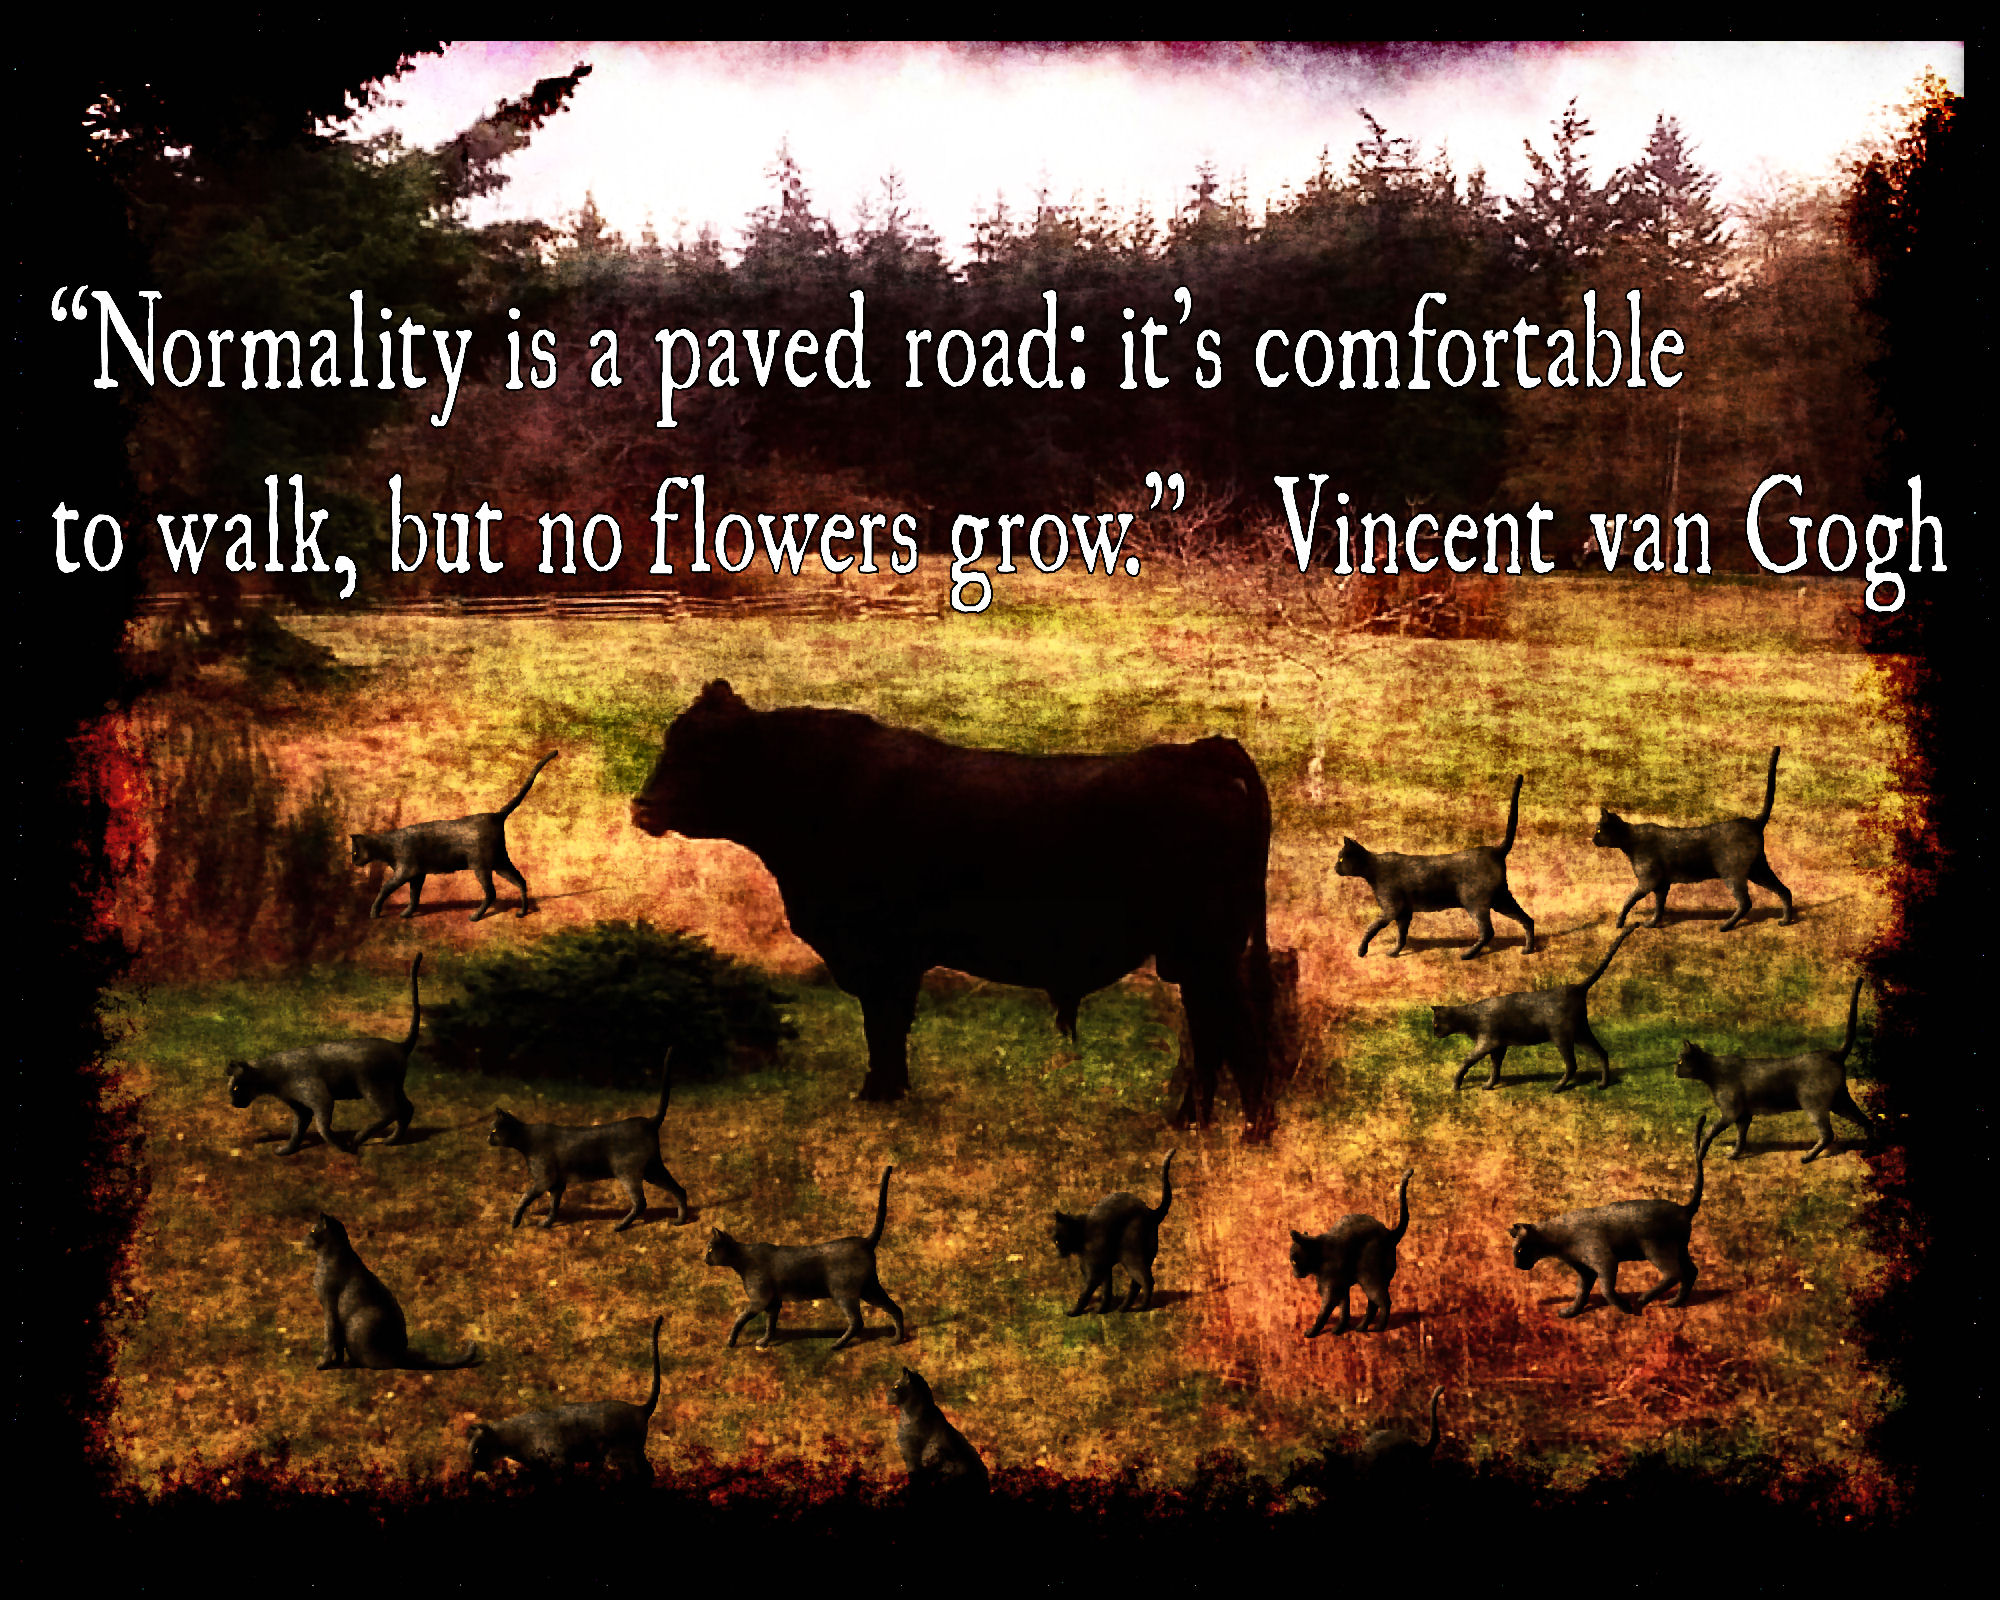 Quote by Vincent van Gogh, Normality is a paved road: it's comfortable to walk, but no flowers grow.